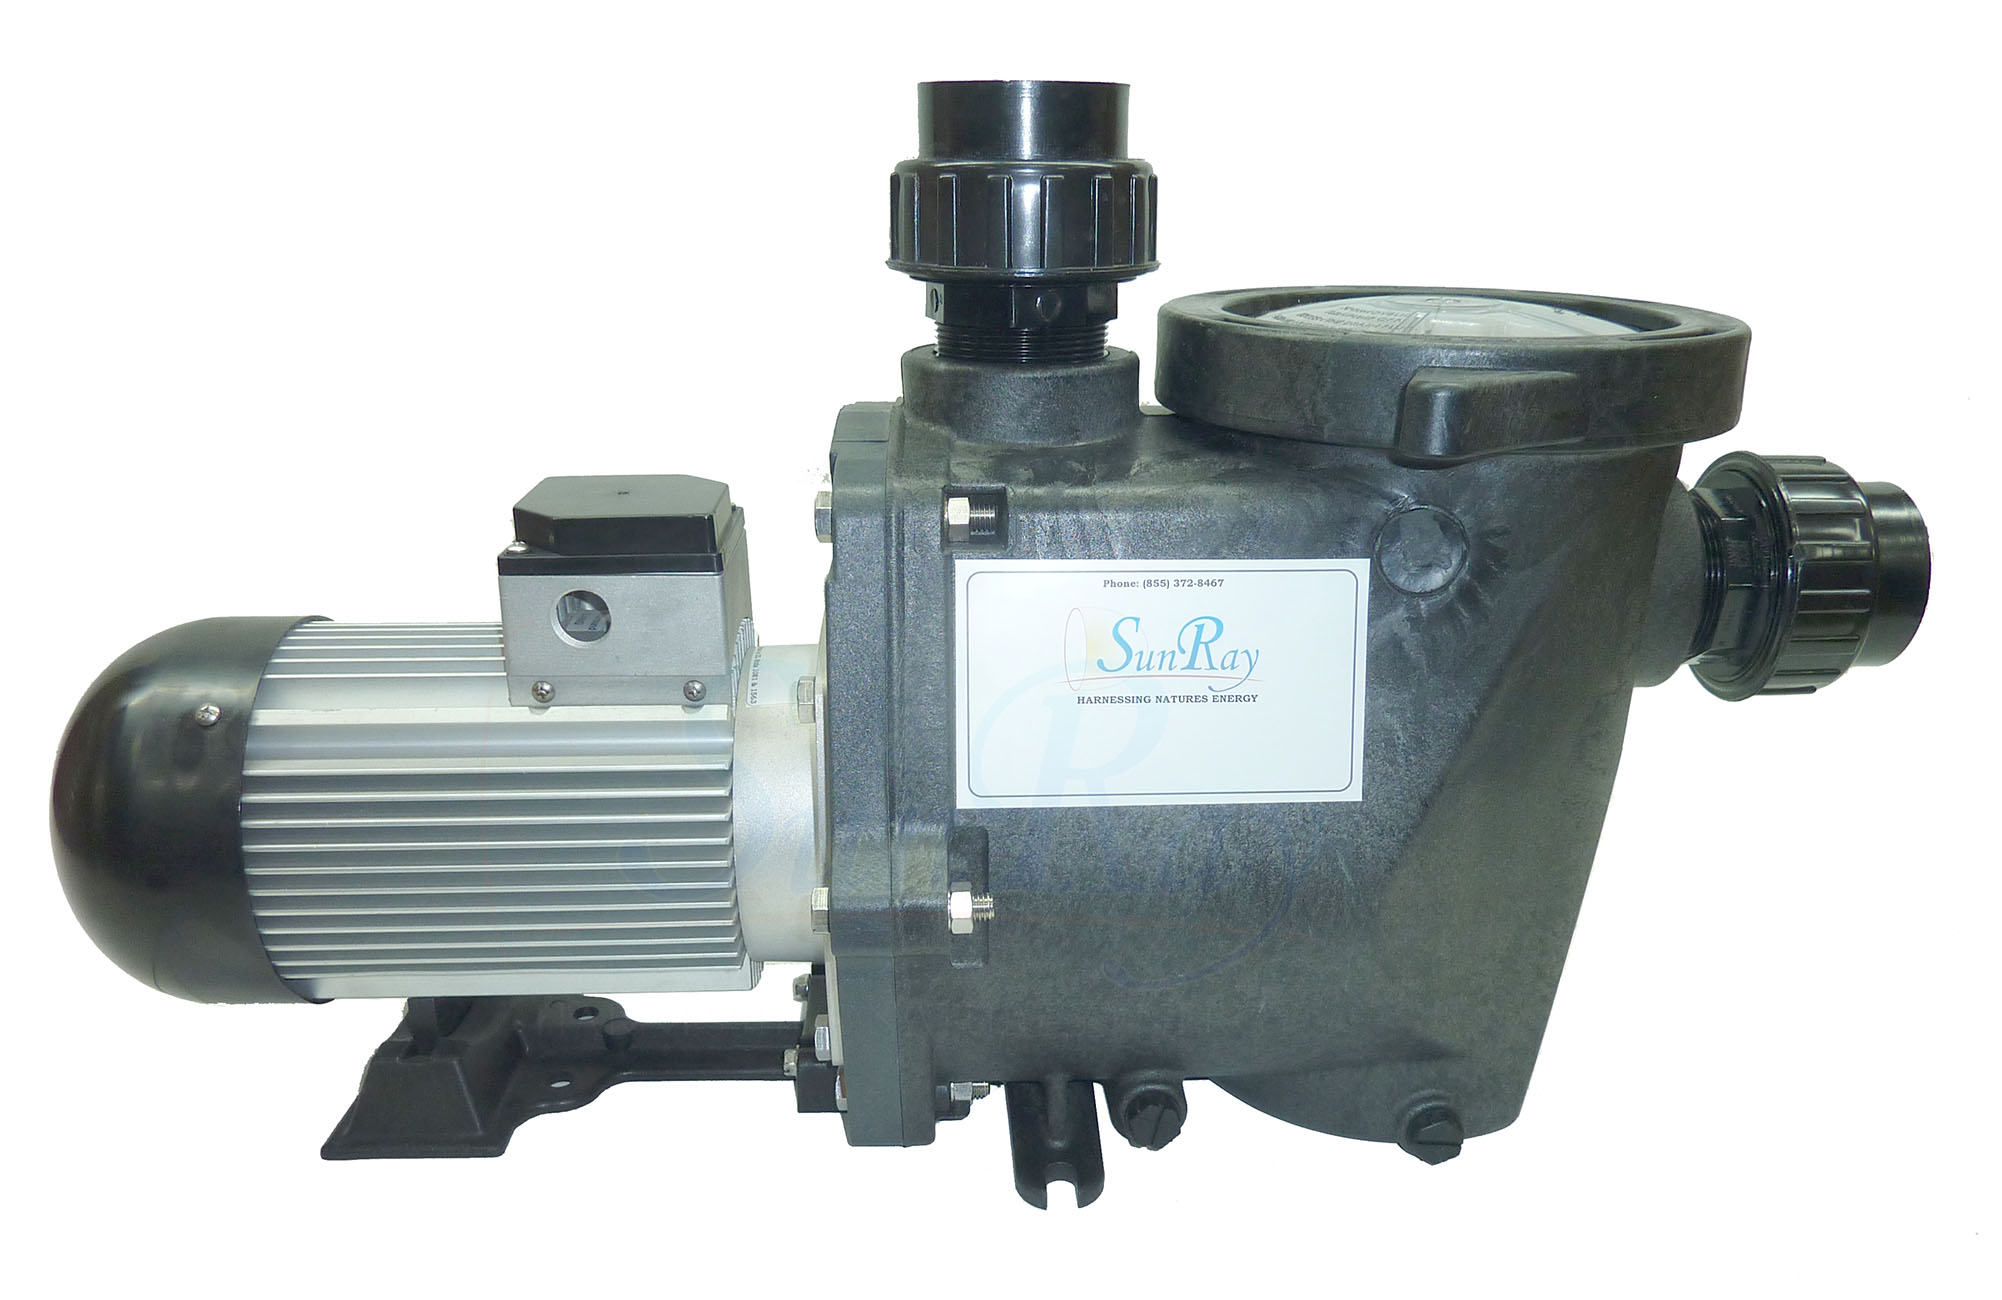 Swimming Pool Filter Pump Price Sunray Solar Pool Pumps Solar Powered Pool Pumps Residential